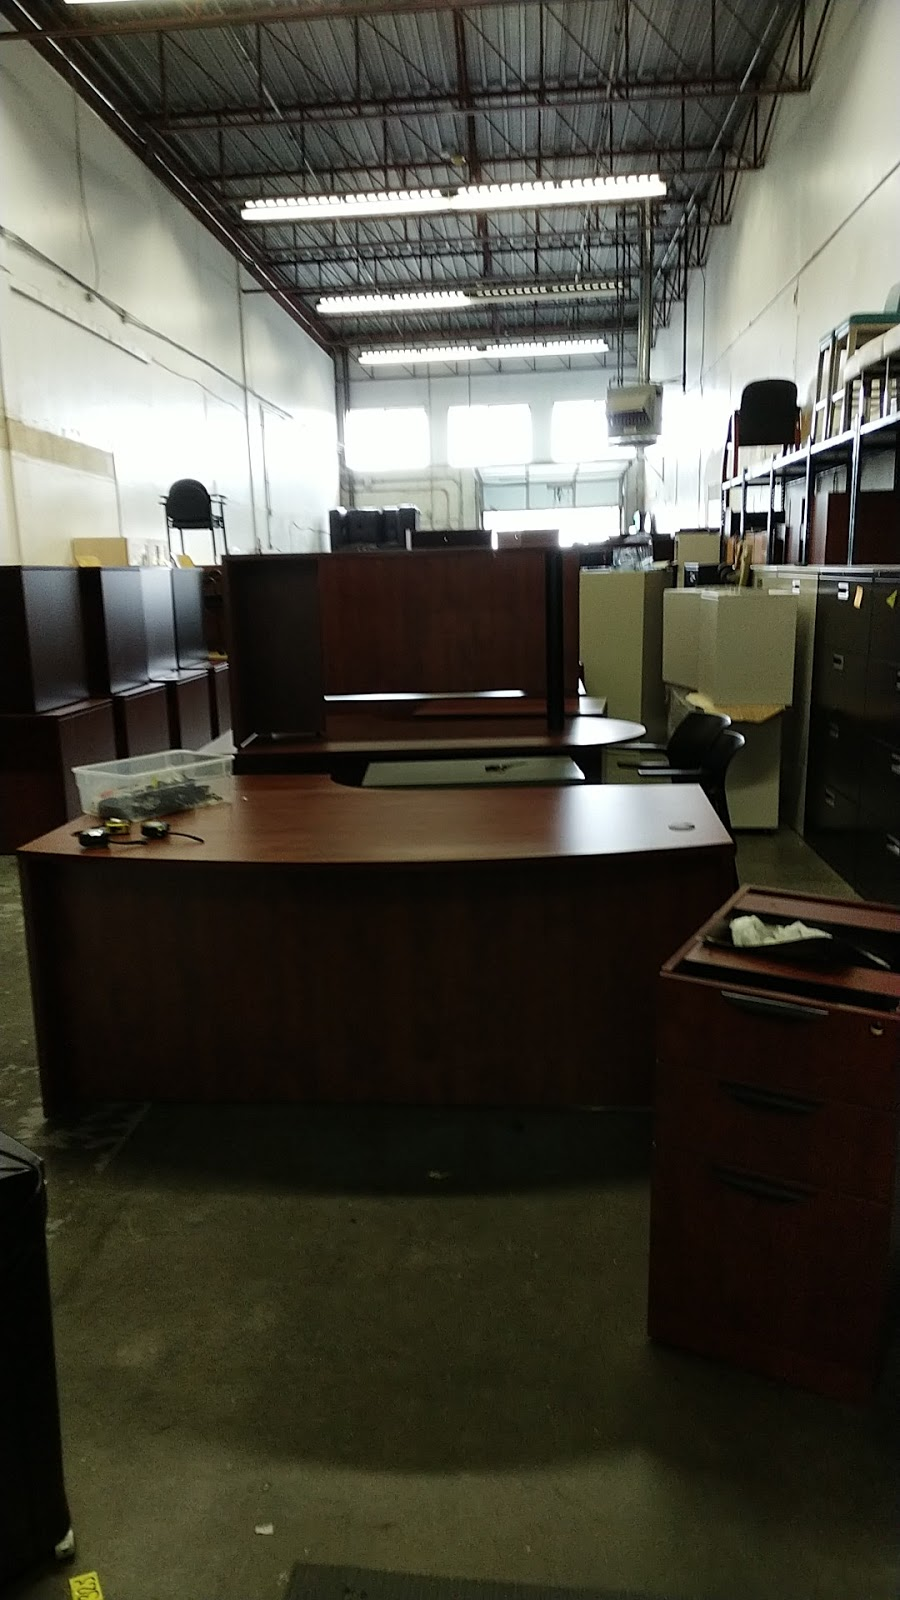 The Office Shop | furniture store | 7620 Winston St, Burnaby, BC V5A 2H4, Canada | 6042998402 OR +1 604-299-8402